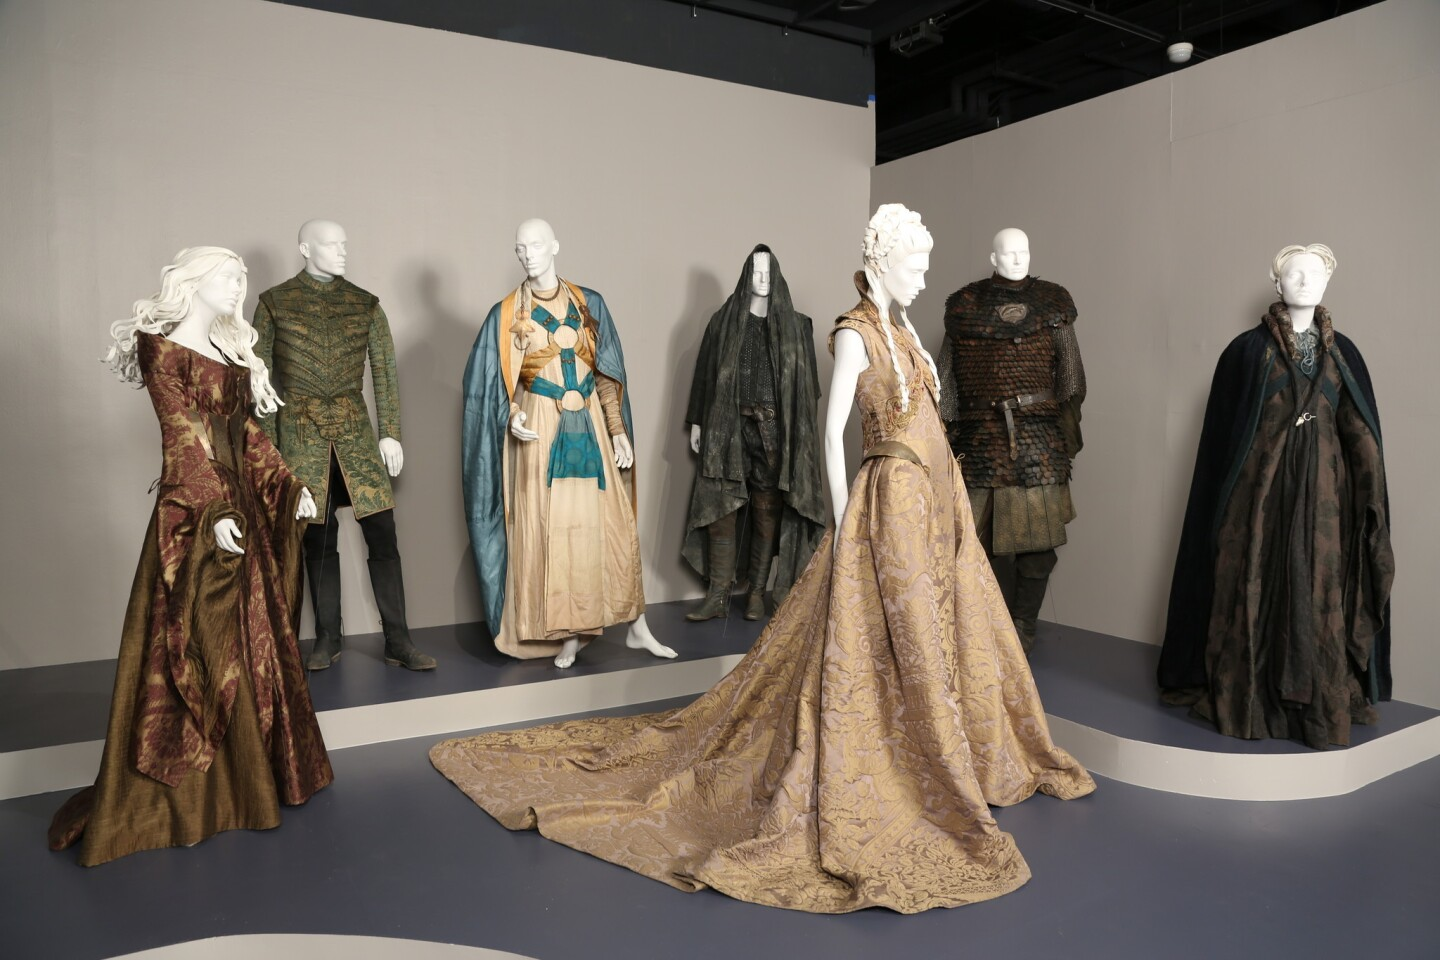 """""""Game of Thrones"""" costumes, designed by Michele Clapton. These costumes, from left, were worn by Lena Heady as Cersei Lannister; Finn Jones as Loras Tyrell; George Georgiou as Razdal mo Eraz; Patrick Malahide as Balon Greyjoy; Sophie Turner as Sansa Stark; Clive Russell as Brynden """"Blackfish"""" Tully, and and Michelle Fairley as Catelyn Stark."""